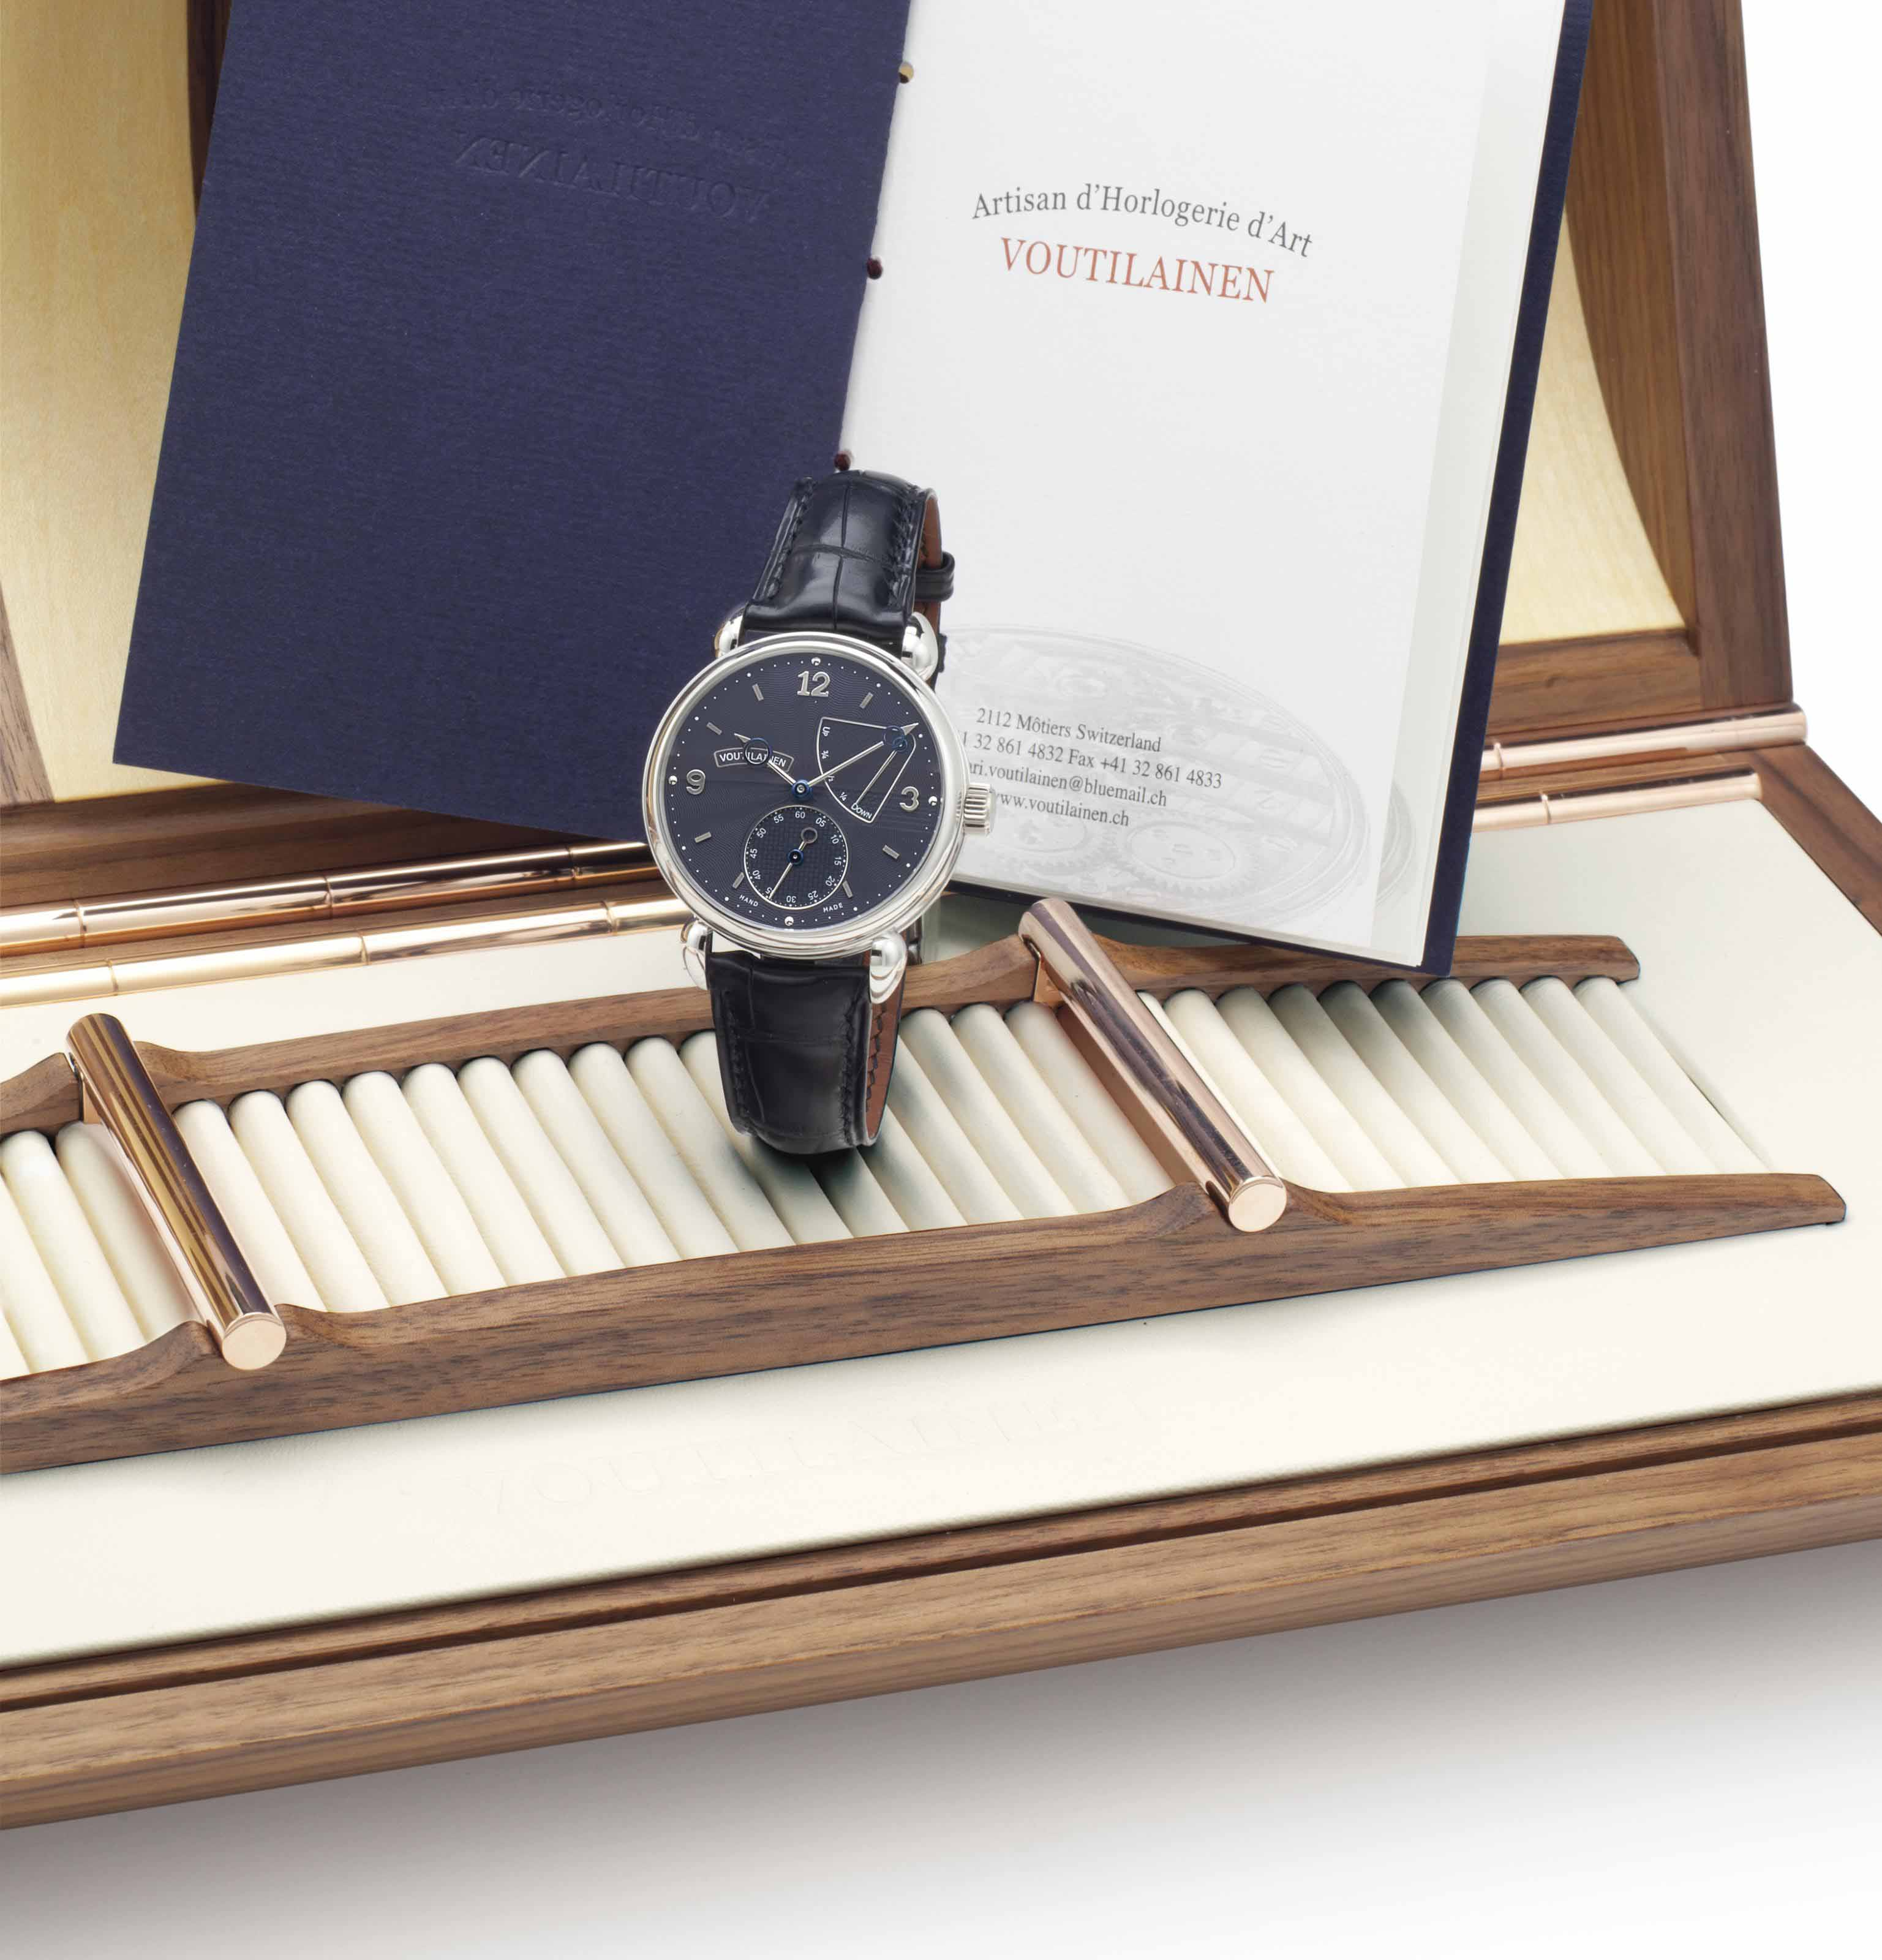 Kari Voutilainen. A Very Fine Limited Edition Platinum Wristwatch with Power Reserve